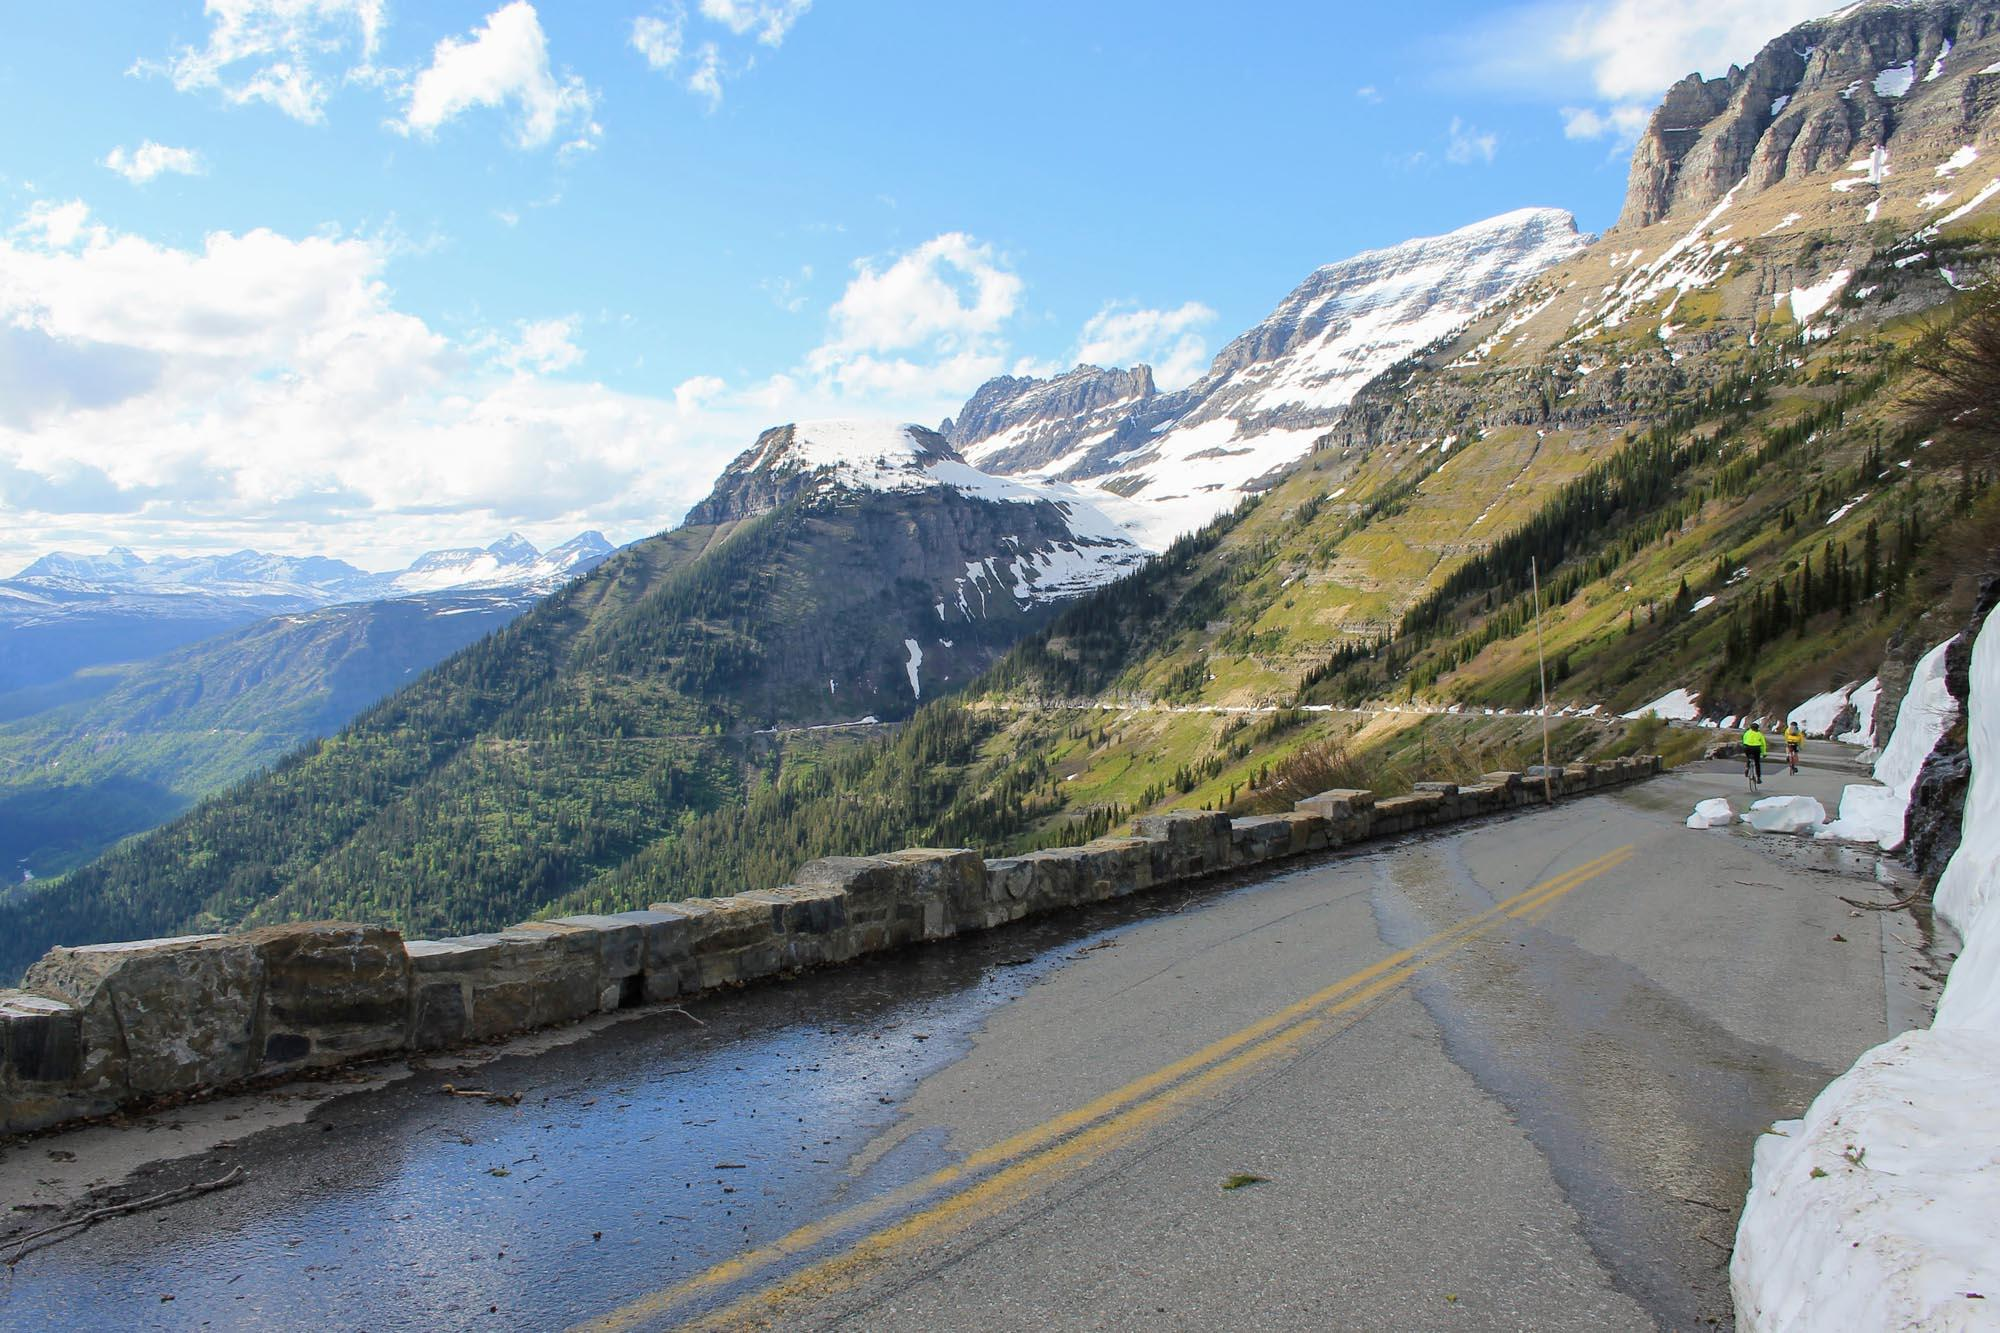 After working to reach Logan Pass, miles of downhill take you back toward your starting point